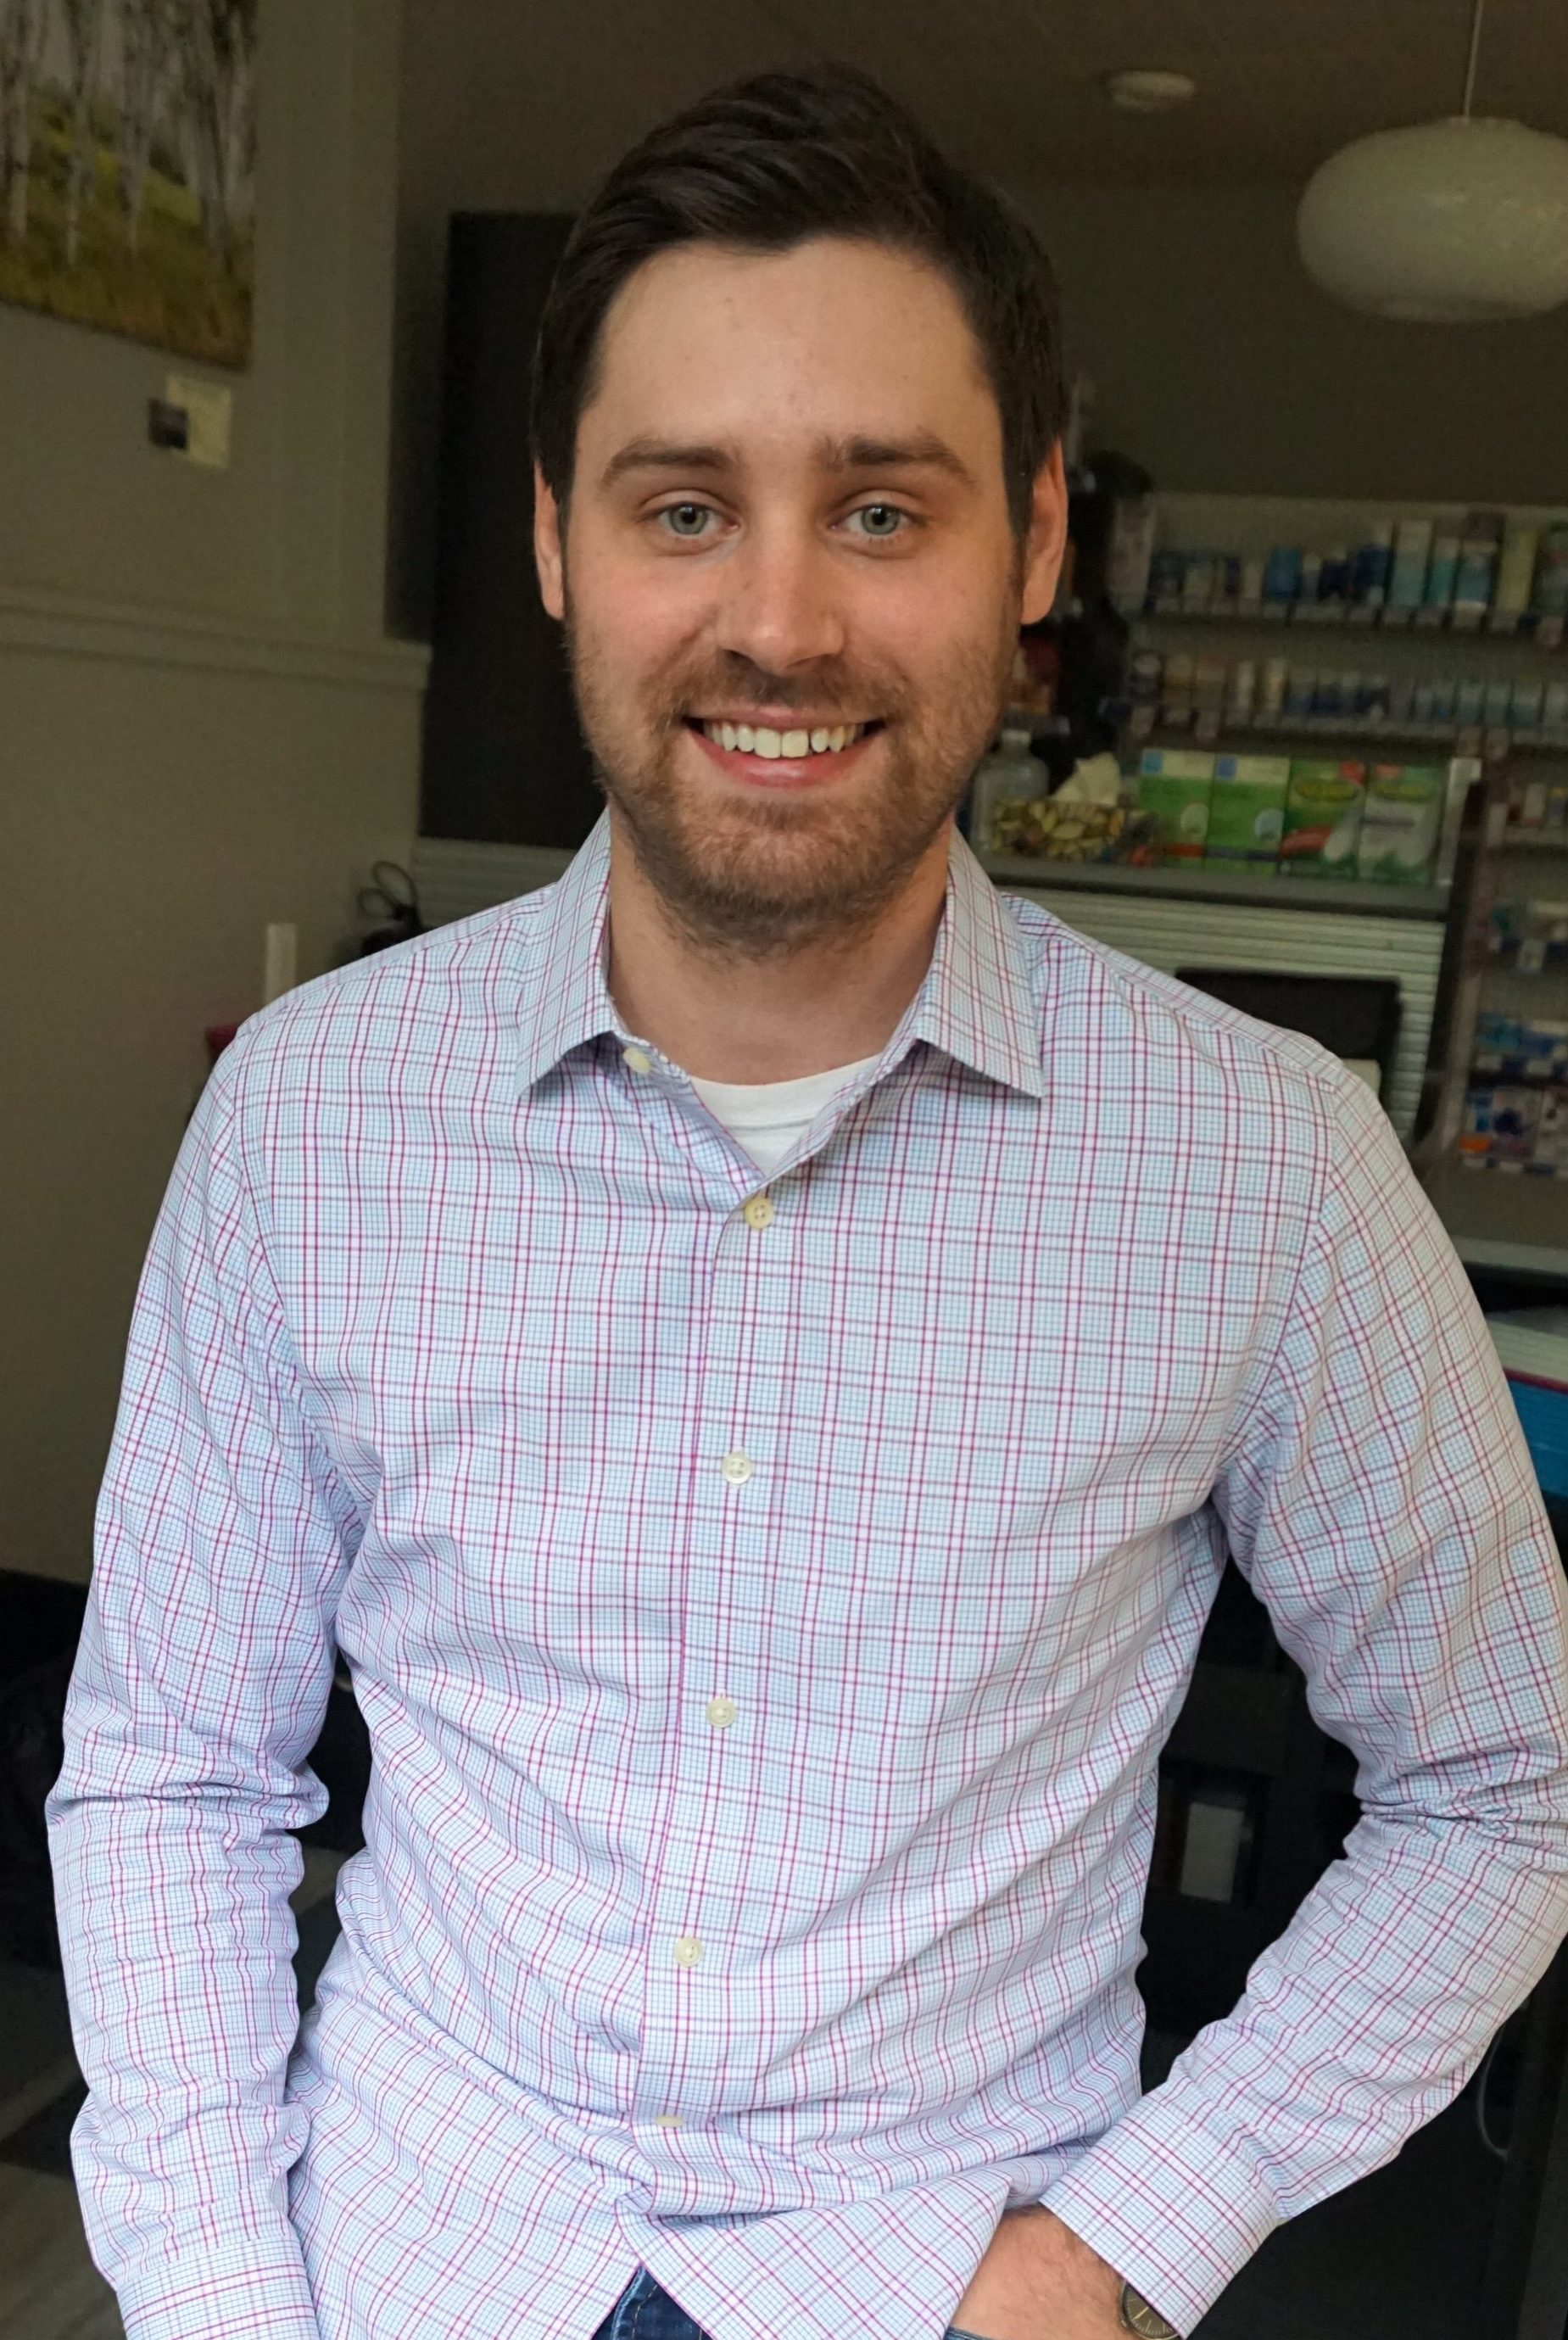 Devon Myers  Pharmacist, Co-Owner  Devon Myers is the pharmacist at Rosslyn IDA Pharmacy. He was born and raised in Thunder Bay, Ontario. After completing an Undergraduate Degree in Biology at Lakehead University, Devon moved to Toronto where he obtained a Doctor of Pharmacy degree from the University of Toronto. Through student placements and work opportunities, Devon spent a fair amount of time working at the Hospital for Sick Children while in Toronto. Pediatric care remains one of Devon's primary interests. He is very excited to be working in this community. Devon is very passionate about providing personalized care and working with patients one-on-one in order to improve their health care.  In his free time, Devon likes to spend time with family and friends. He would also like to learn more about carpentry and wood working (if anyone has any pointers!).